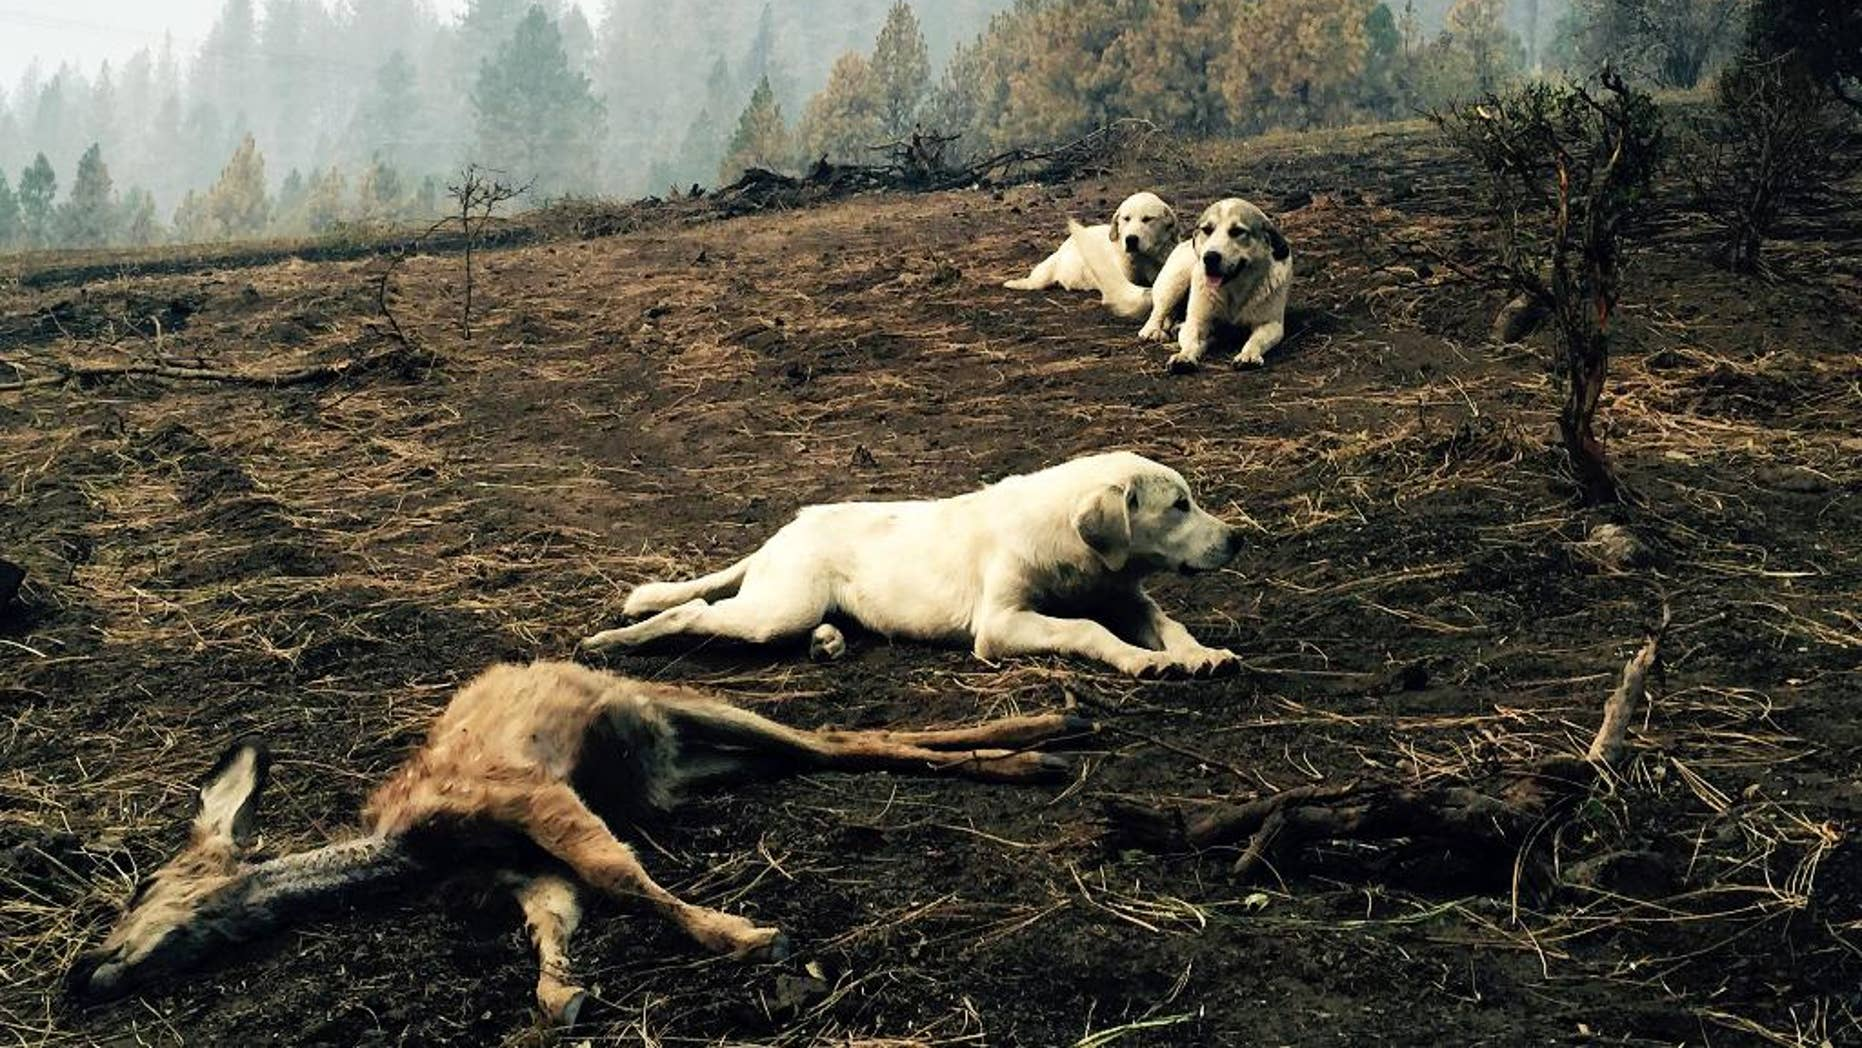 In this Monday, Aug, 17, 2015, photo, a sheep dog and her two pups protect a dead fawn, killed when fire swept through Kamiah, Idaho. The dogs stayed for hours, warding off people and potential predators, according to a witness. The group of fires near Kamiah, in northern Idaho, has destroyed more than 40 homes. (Louis Armstrong via AP)